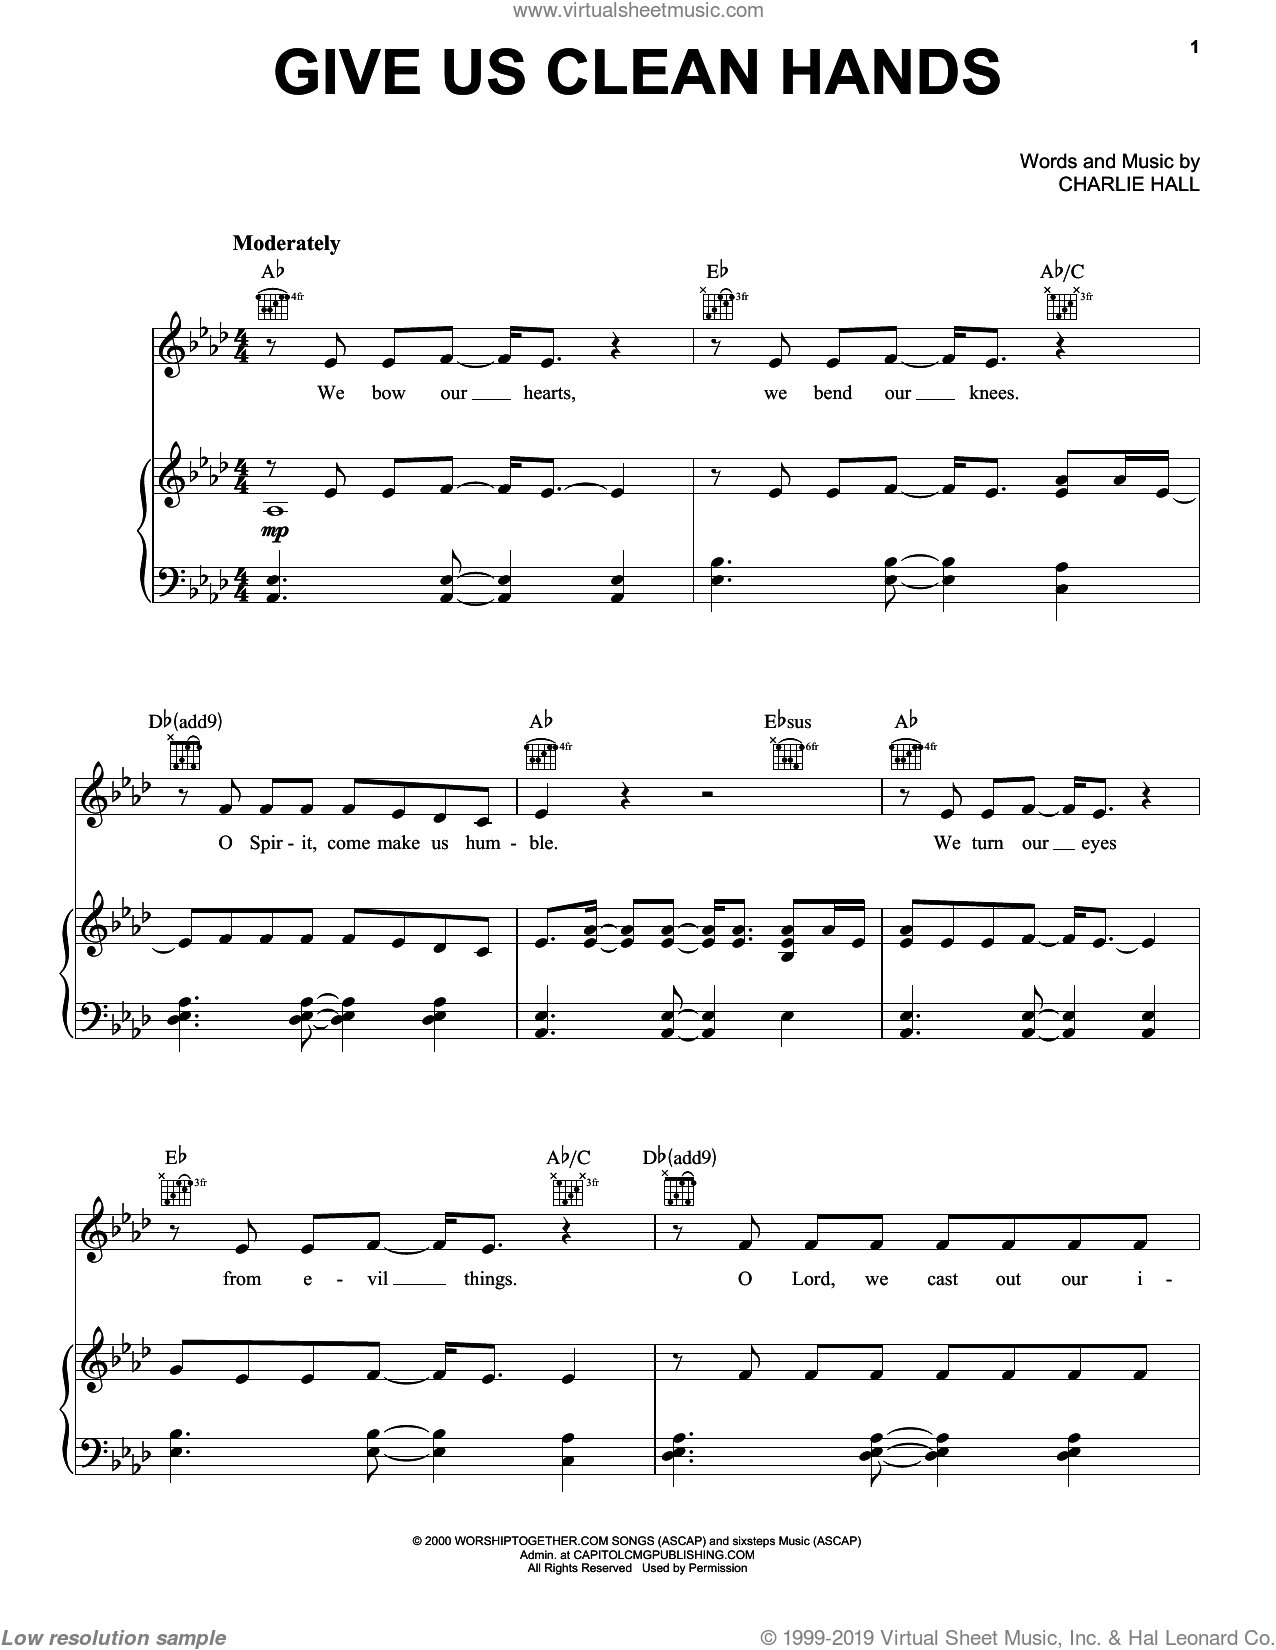 Give Us Clean Hands sheet music for voice, piano or guitar by Chris Tomlin and Charlie Hall, intermediate skill level